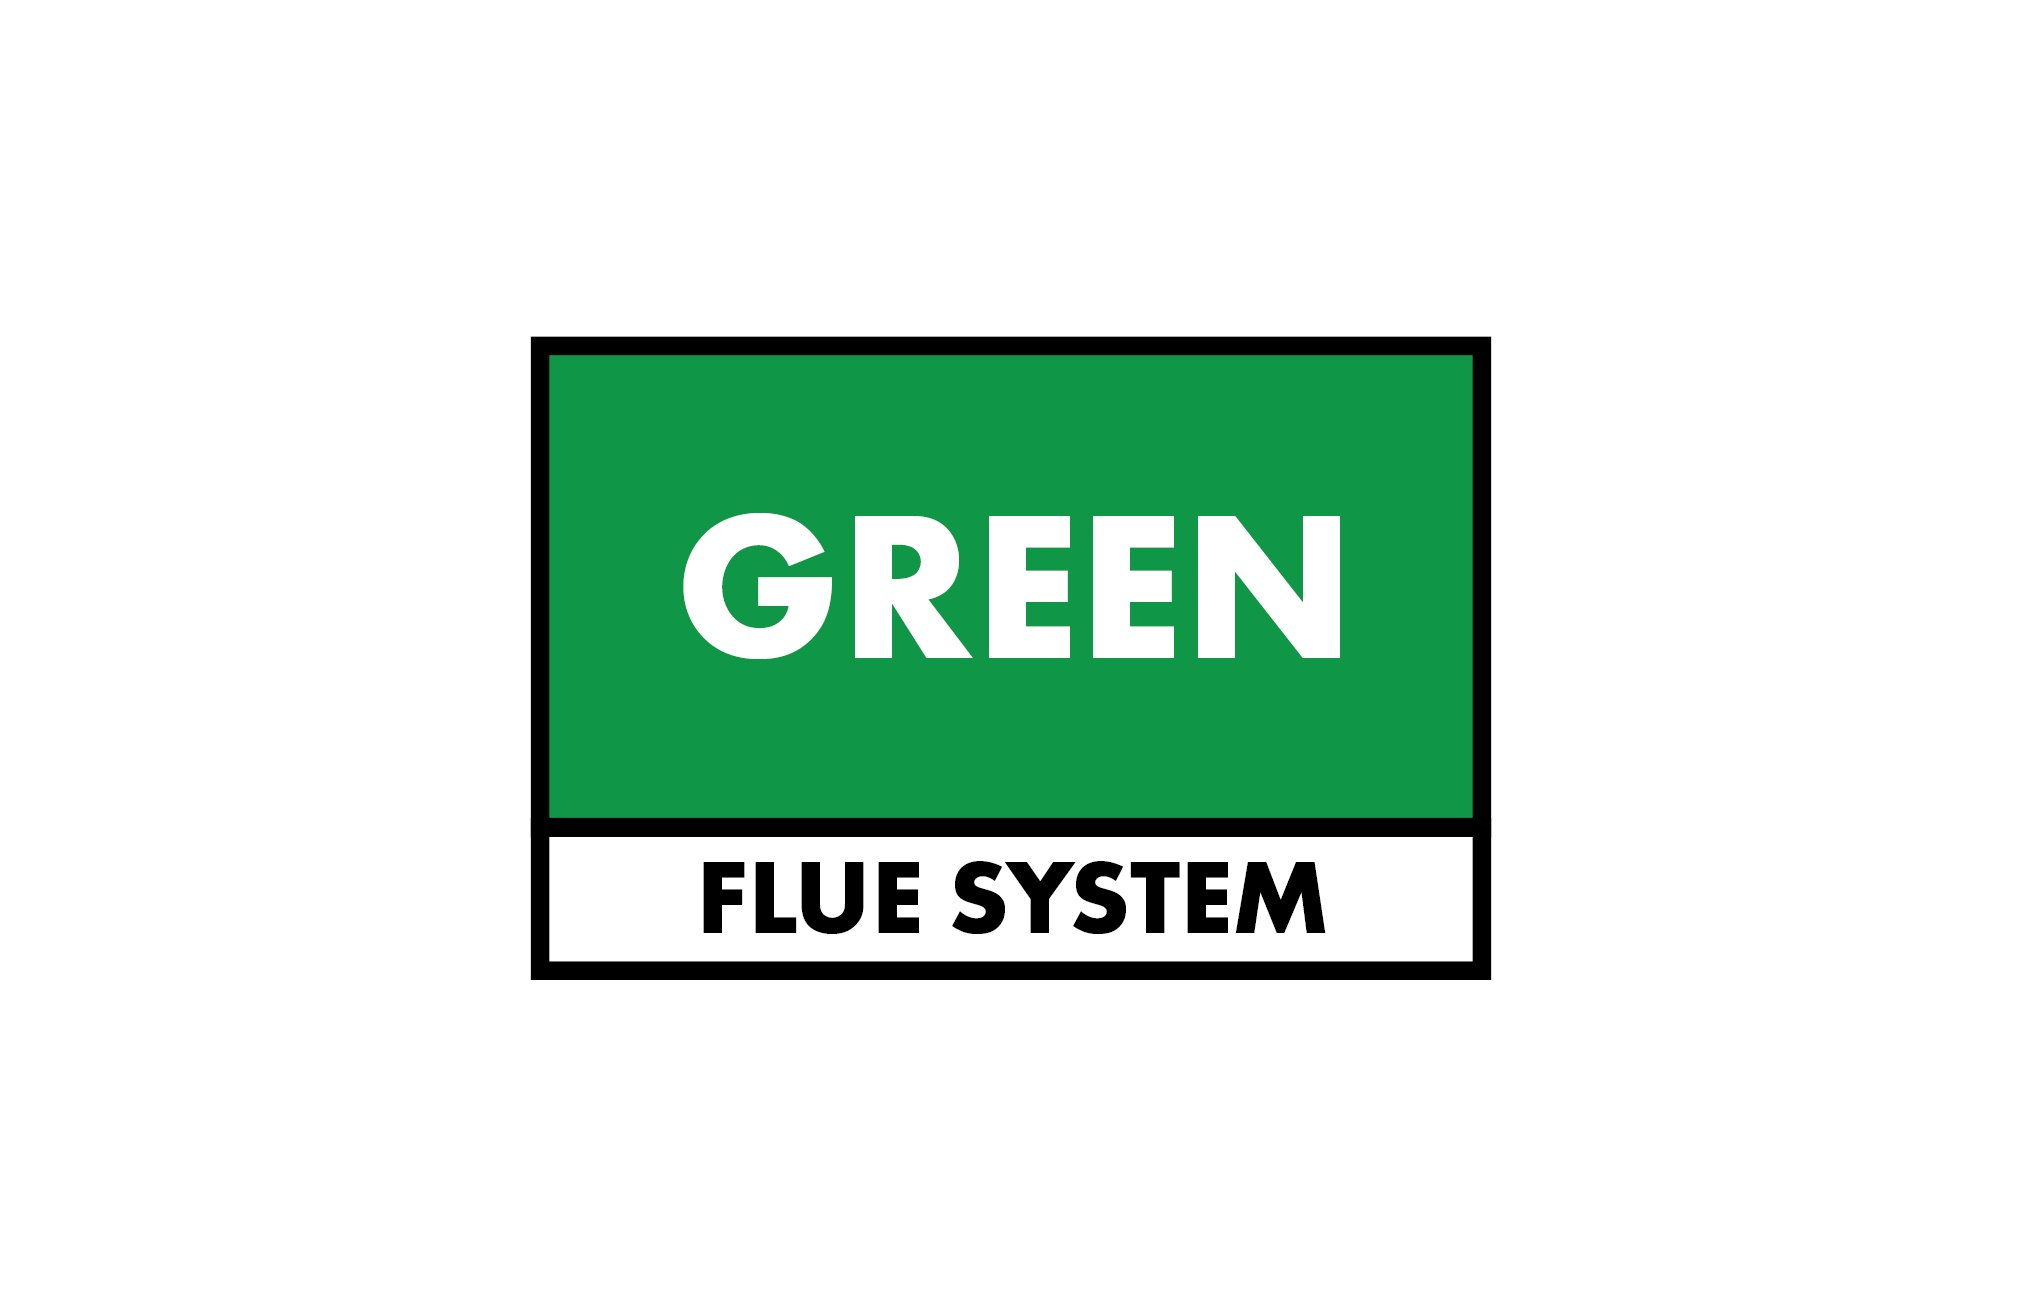 EZ Fit External Flue (green system) for outdoor boilers